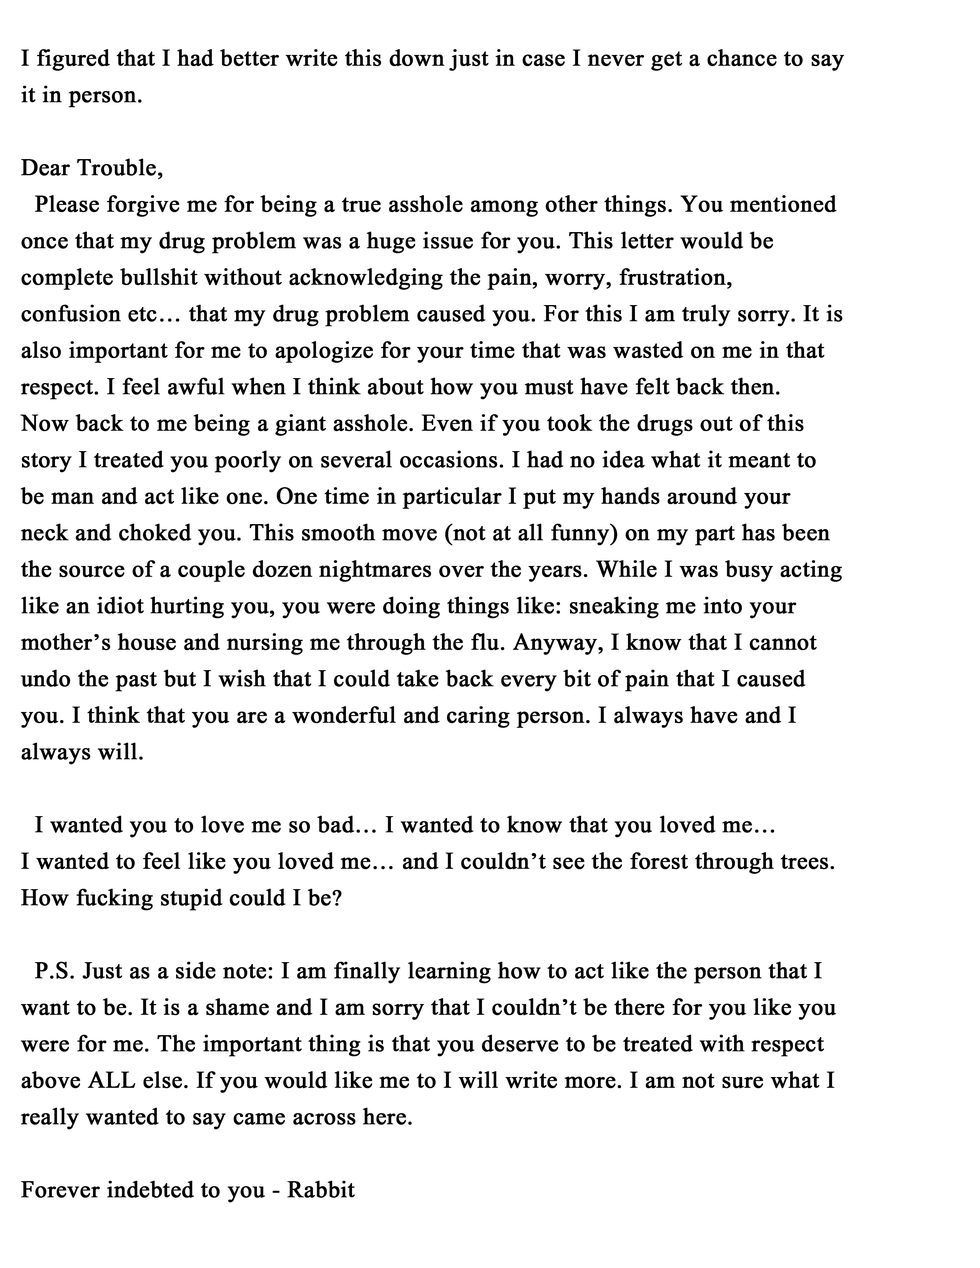 Former abuser writes letter to his ex in this self deprecating letter you can see that rabbit tried to bring awareness to his ex girlfriend nicknamed trouble that his drug addiction was not spiritdancerdesigns Choice Image